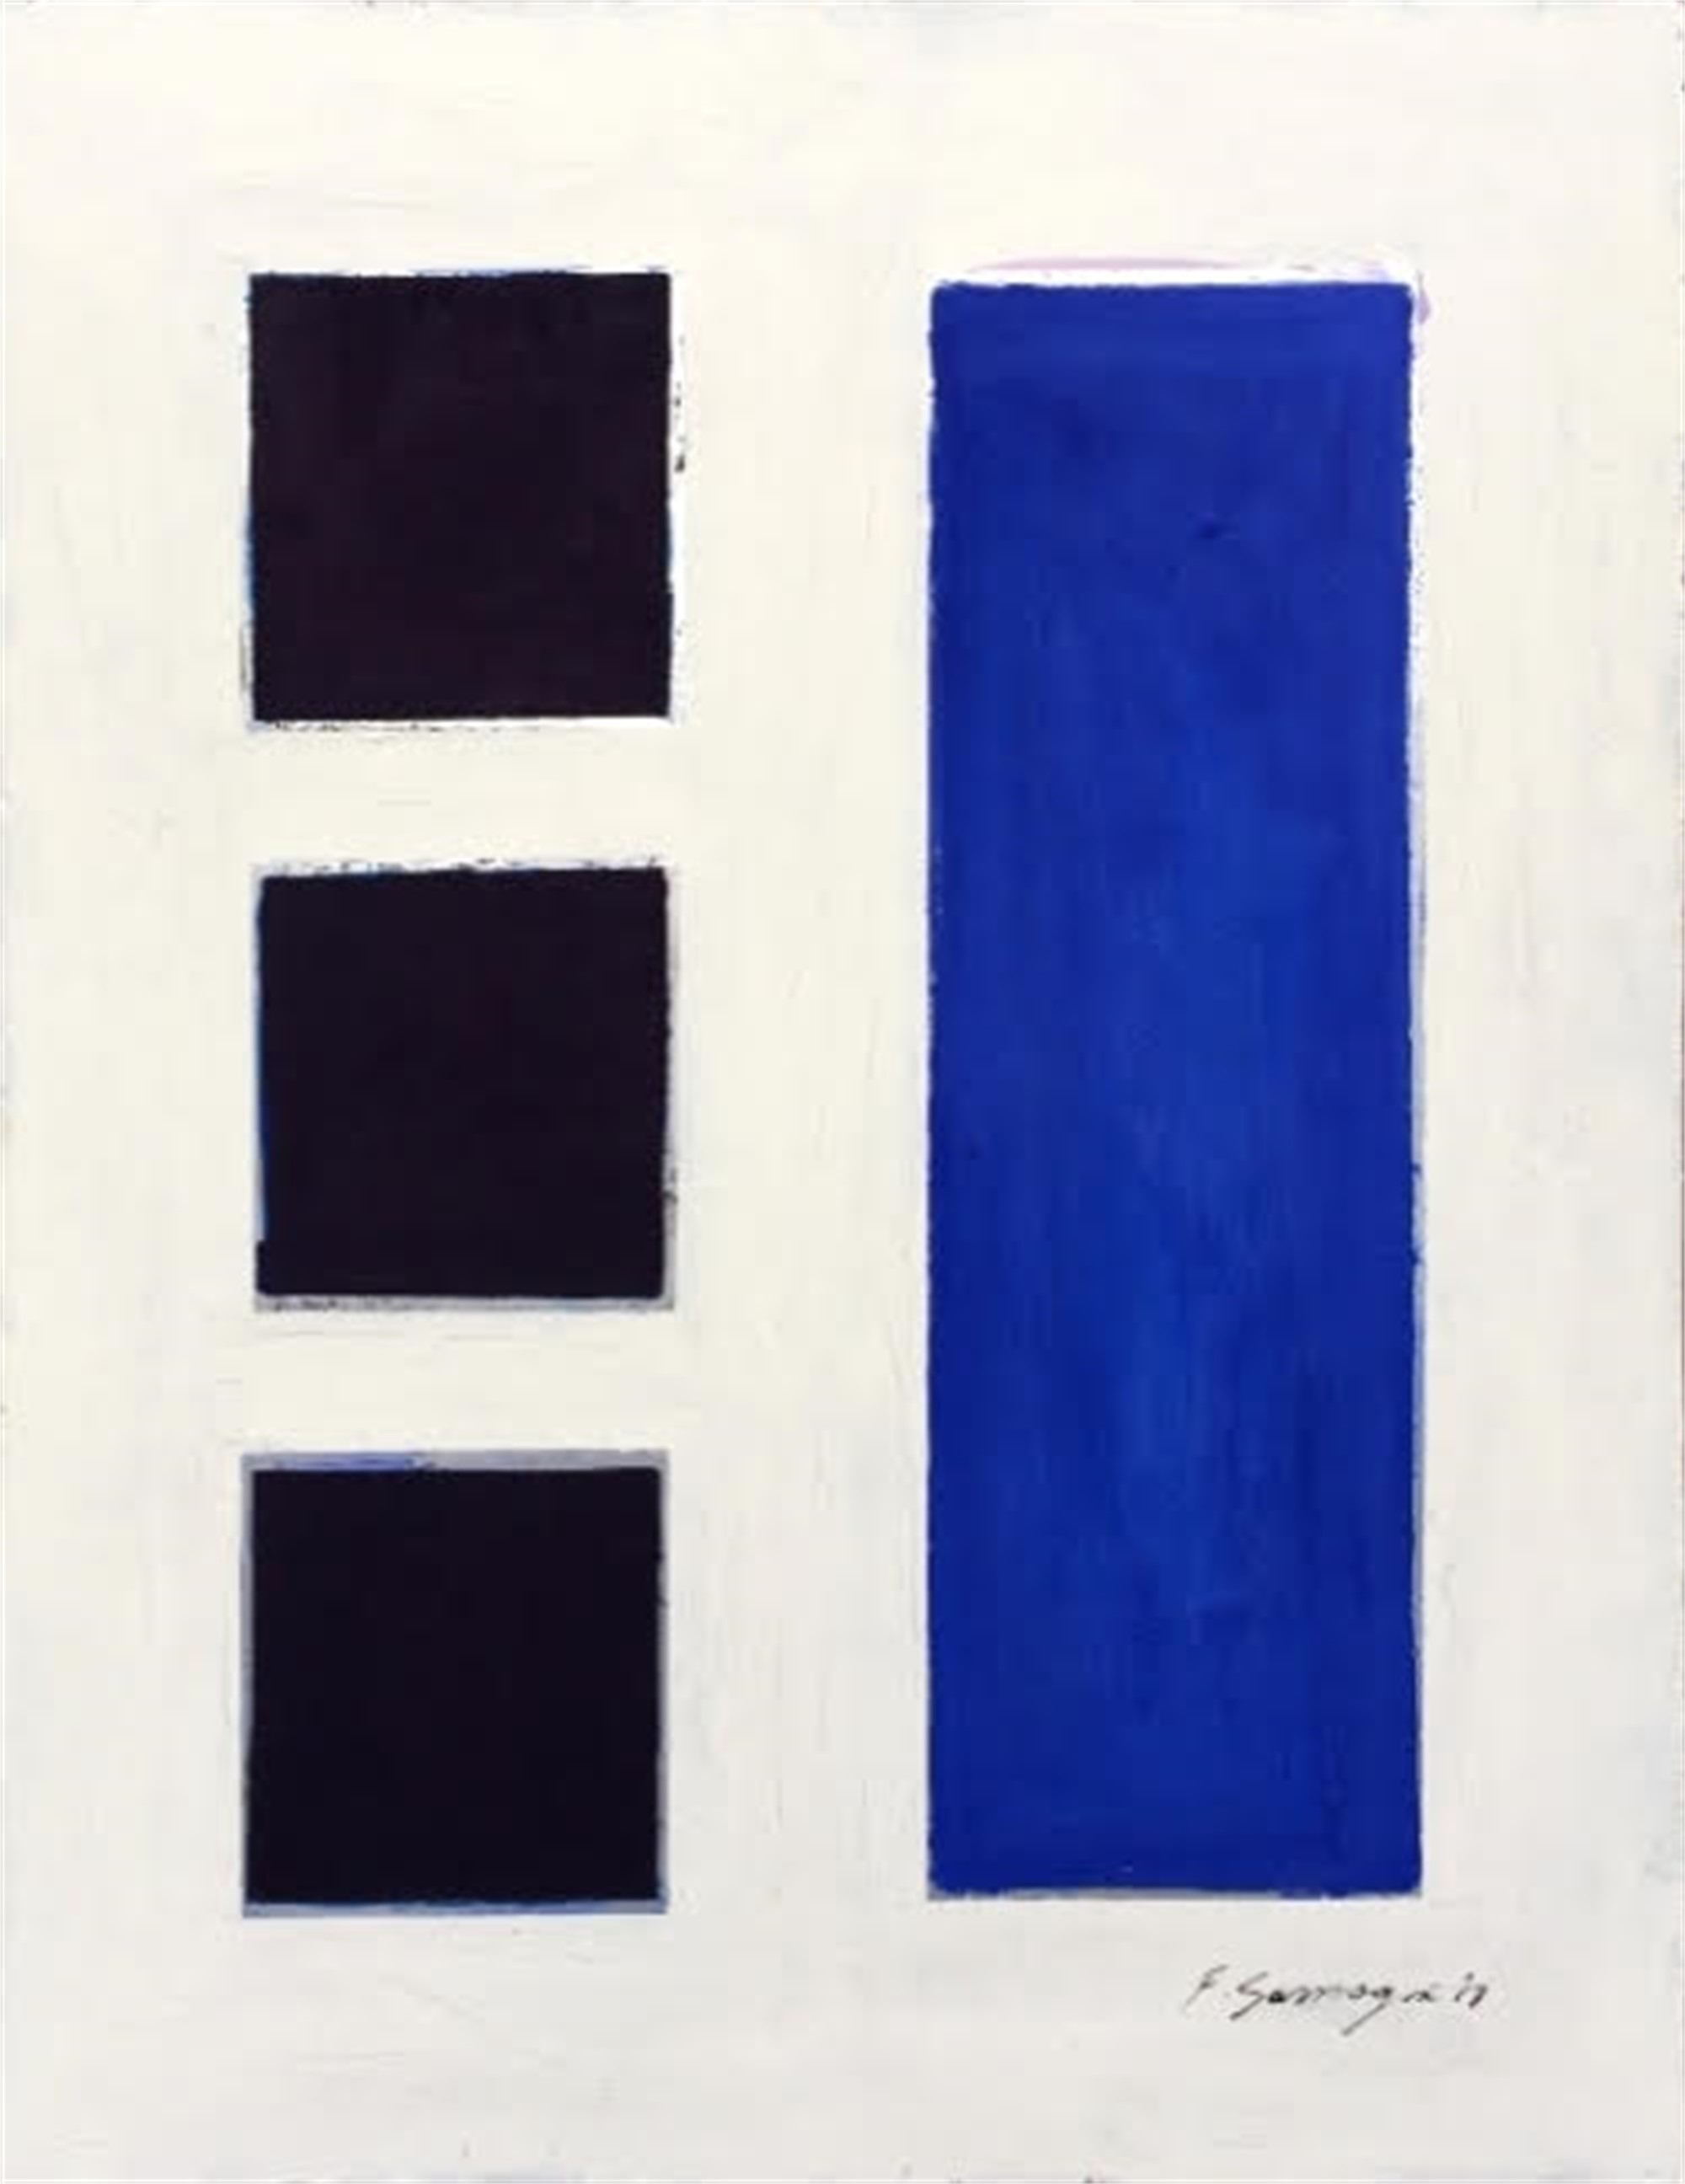 No Significance #12 (blue squares / white background) by Fabio Sanzogni